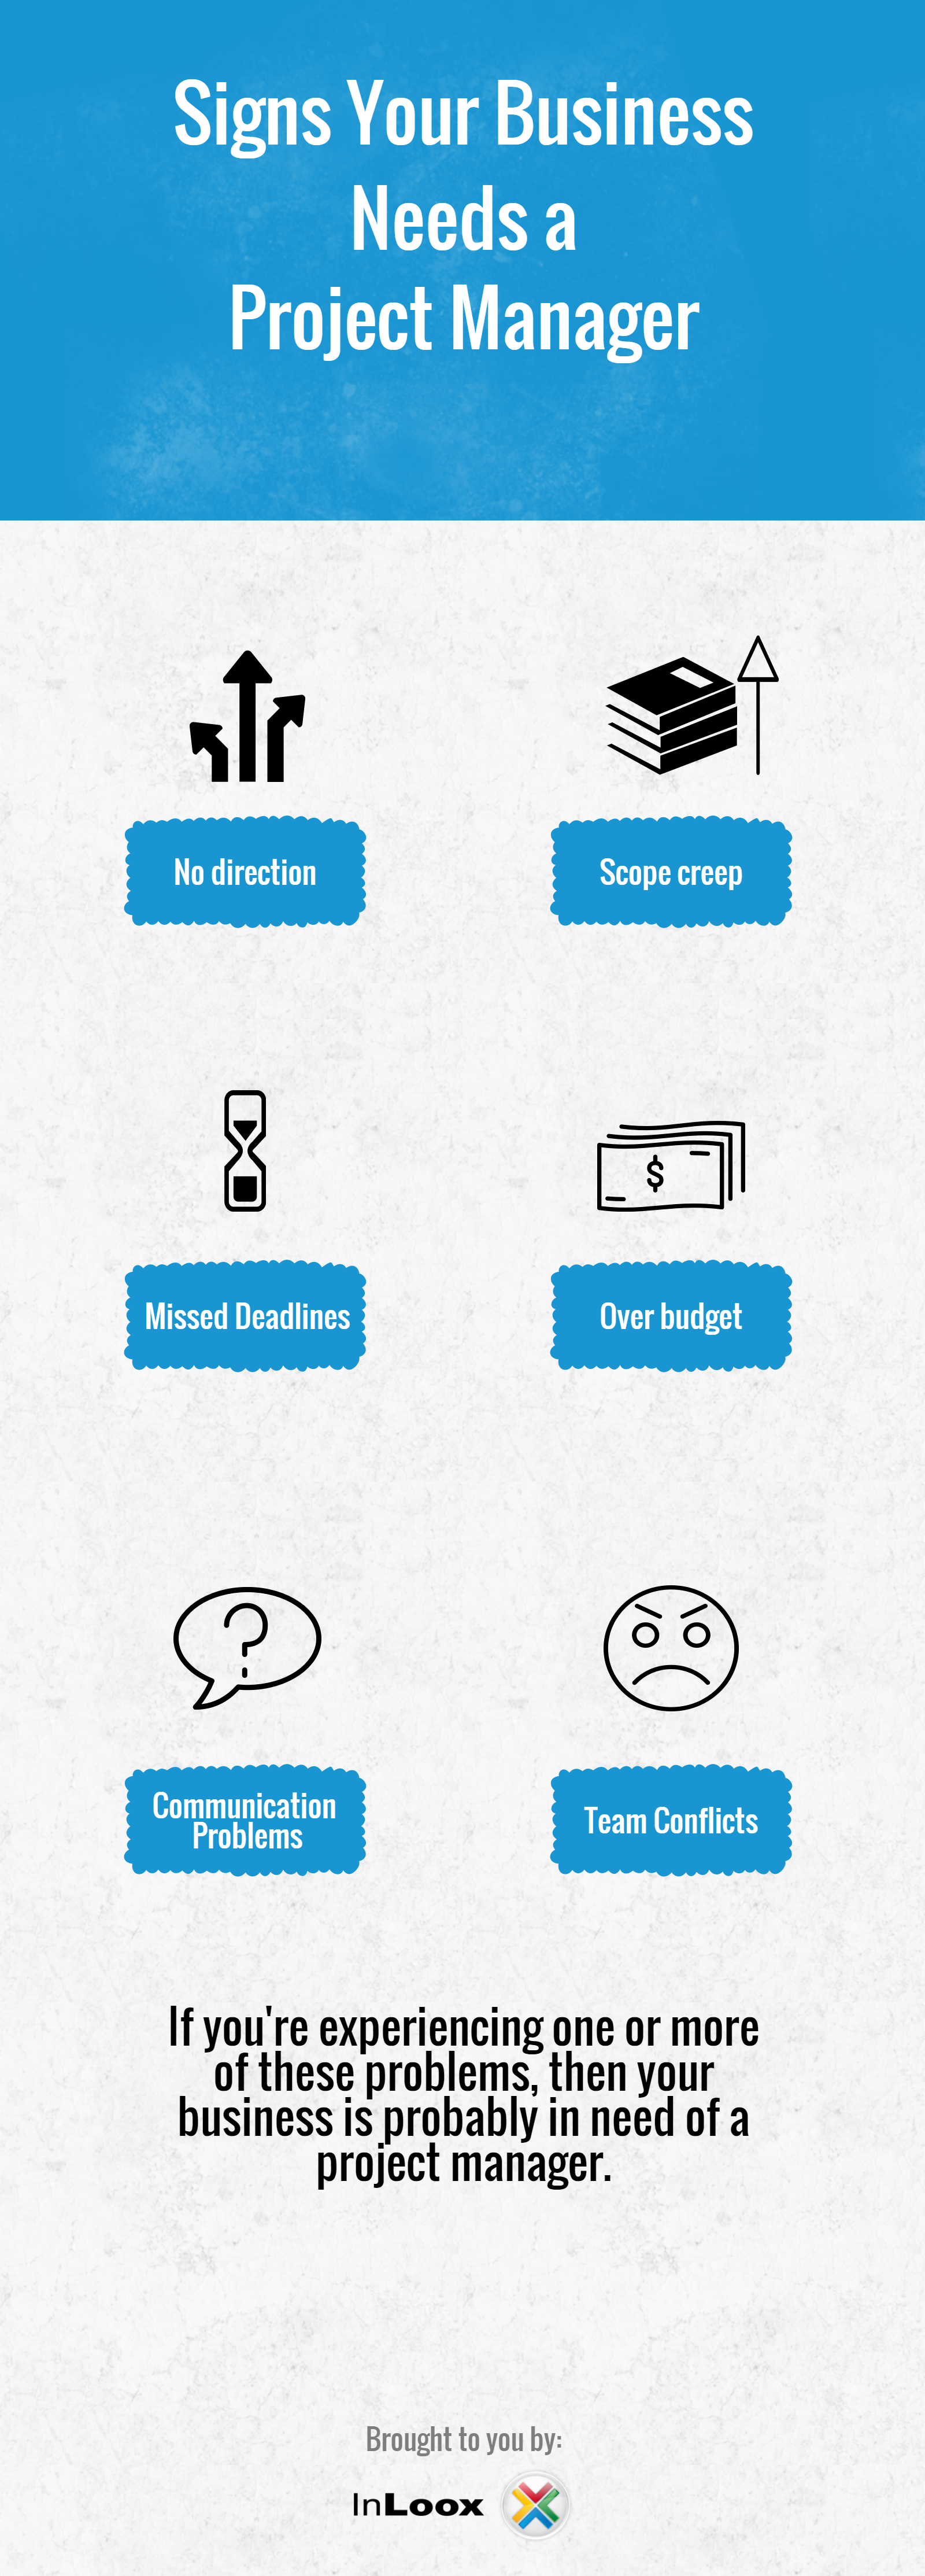 [Infographic] Signs your business needs a Project Manager